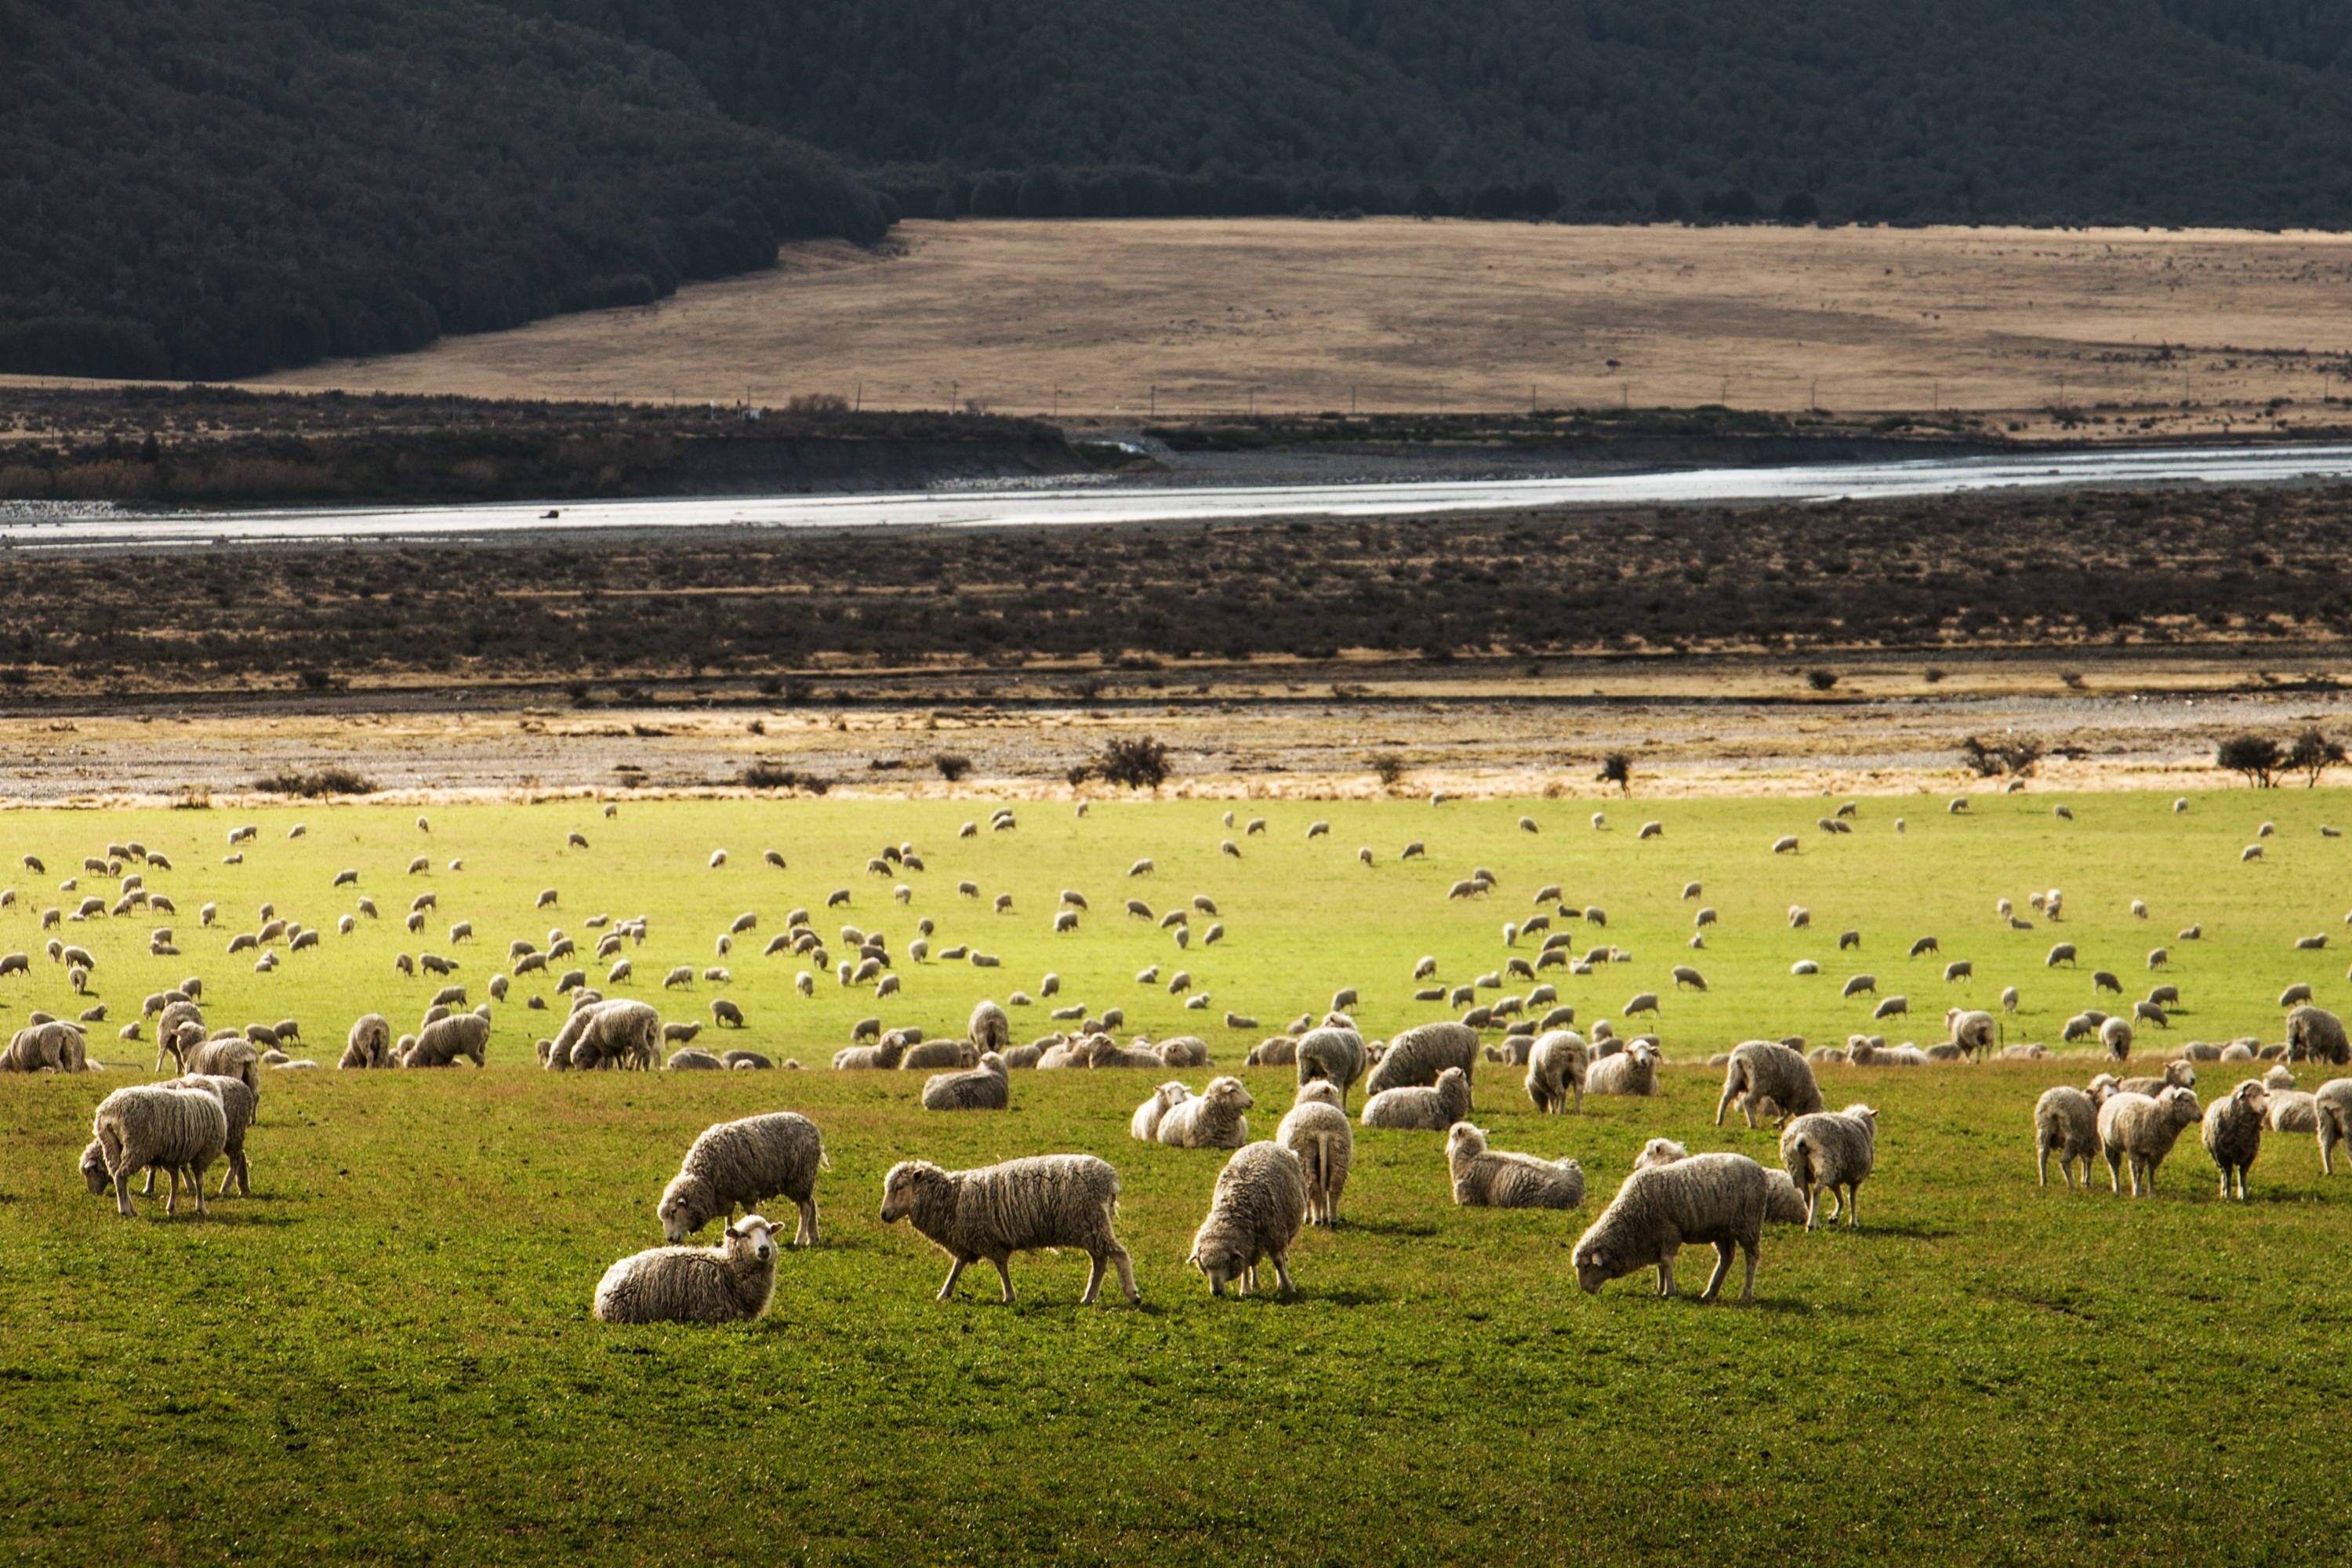 Sheep graze in field with slight rolling hills in background.